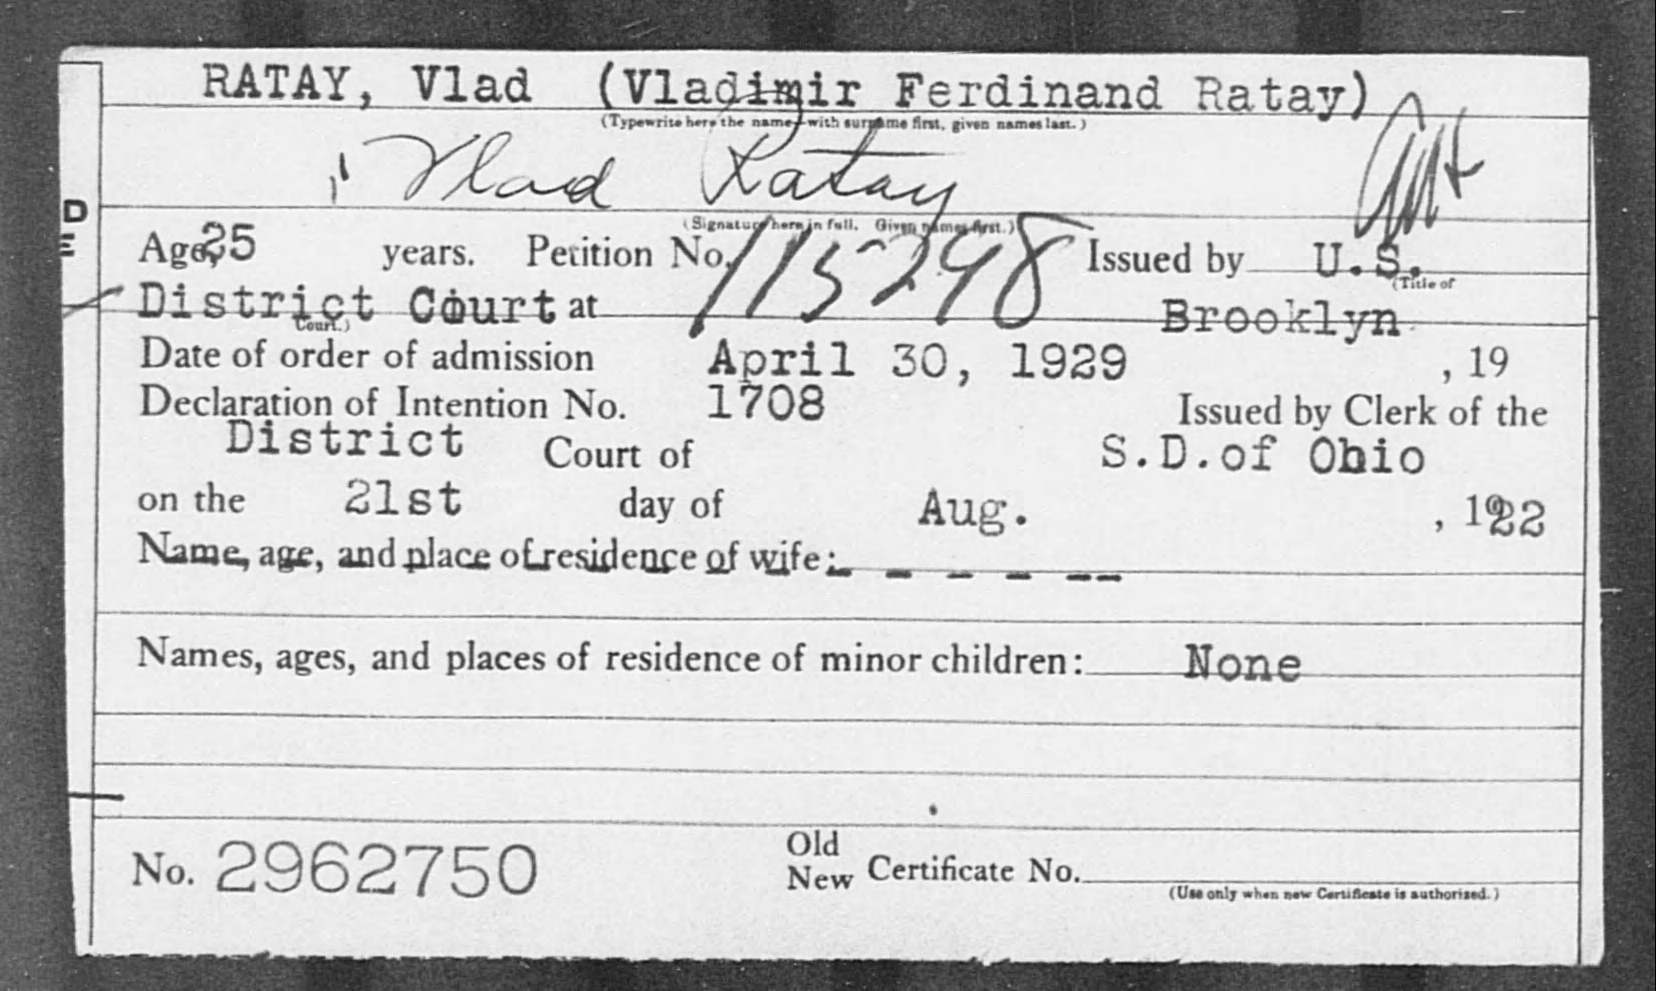 RATAY, Vlad - Born: [BLANK], Naturalized: 1929